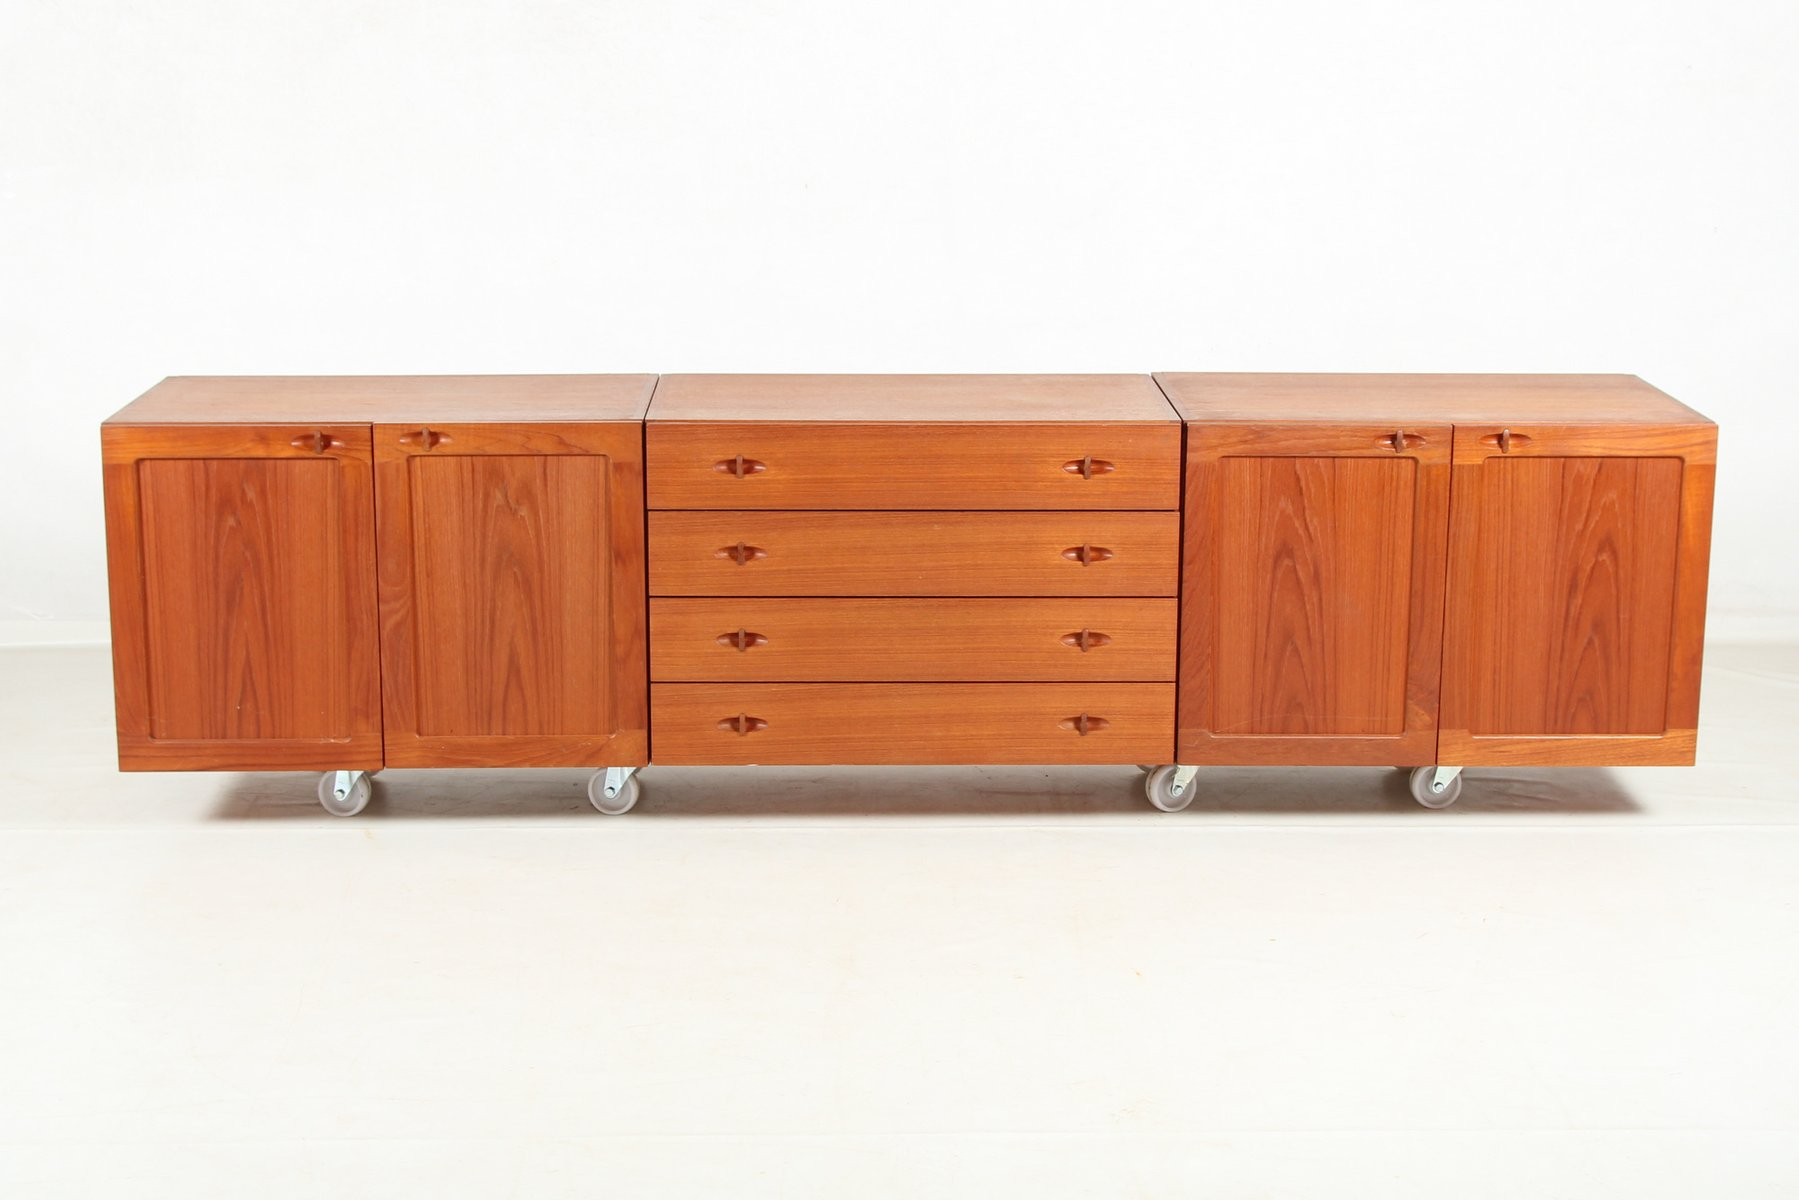 Vintage Sideboard Danish Vintage Danish Modular Sideboard In Teak Veneer For Sale